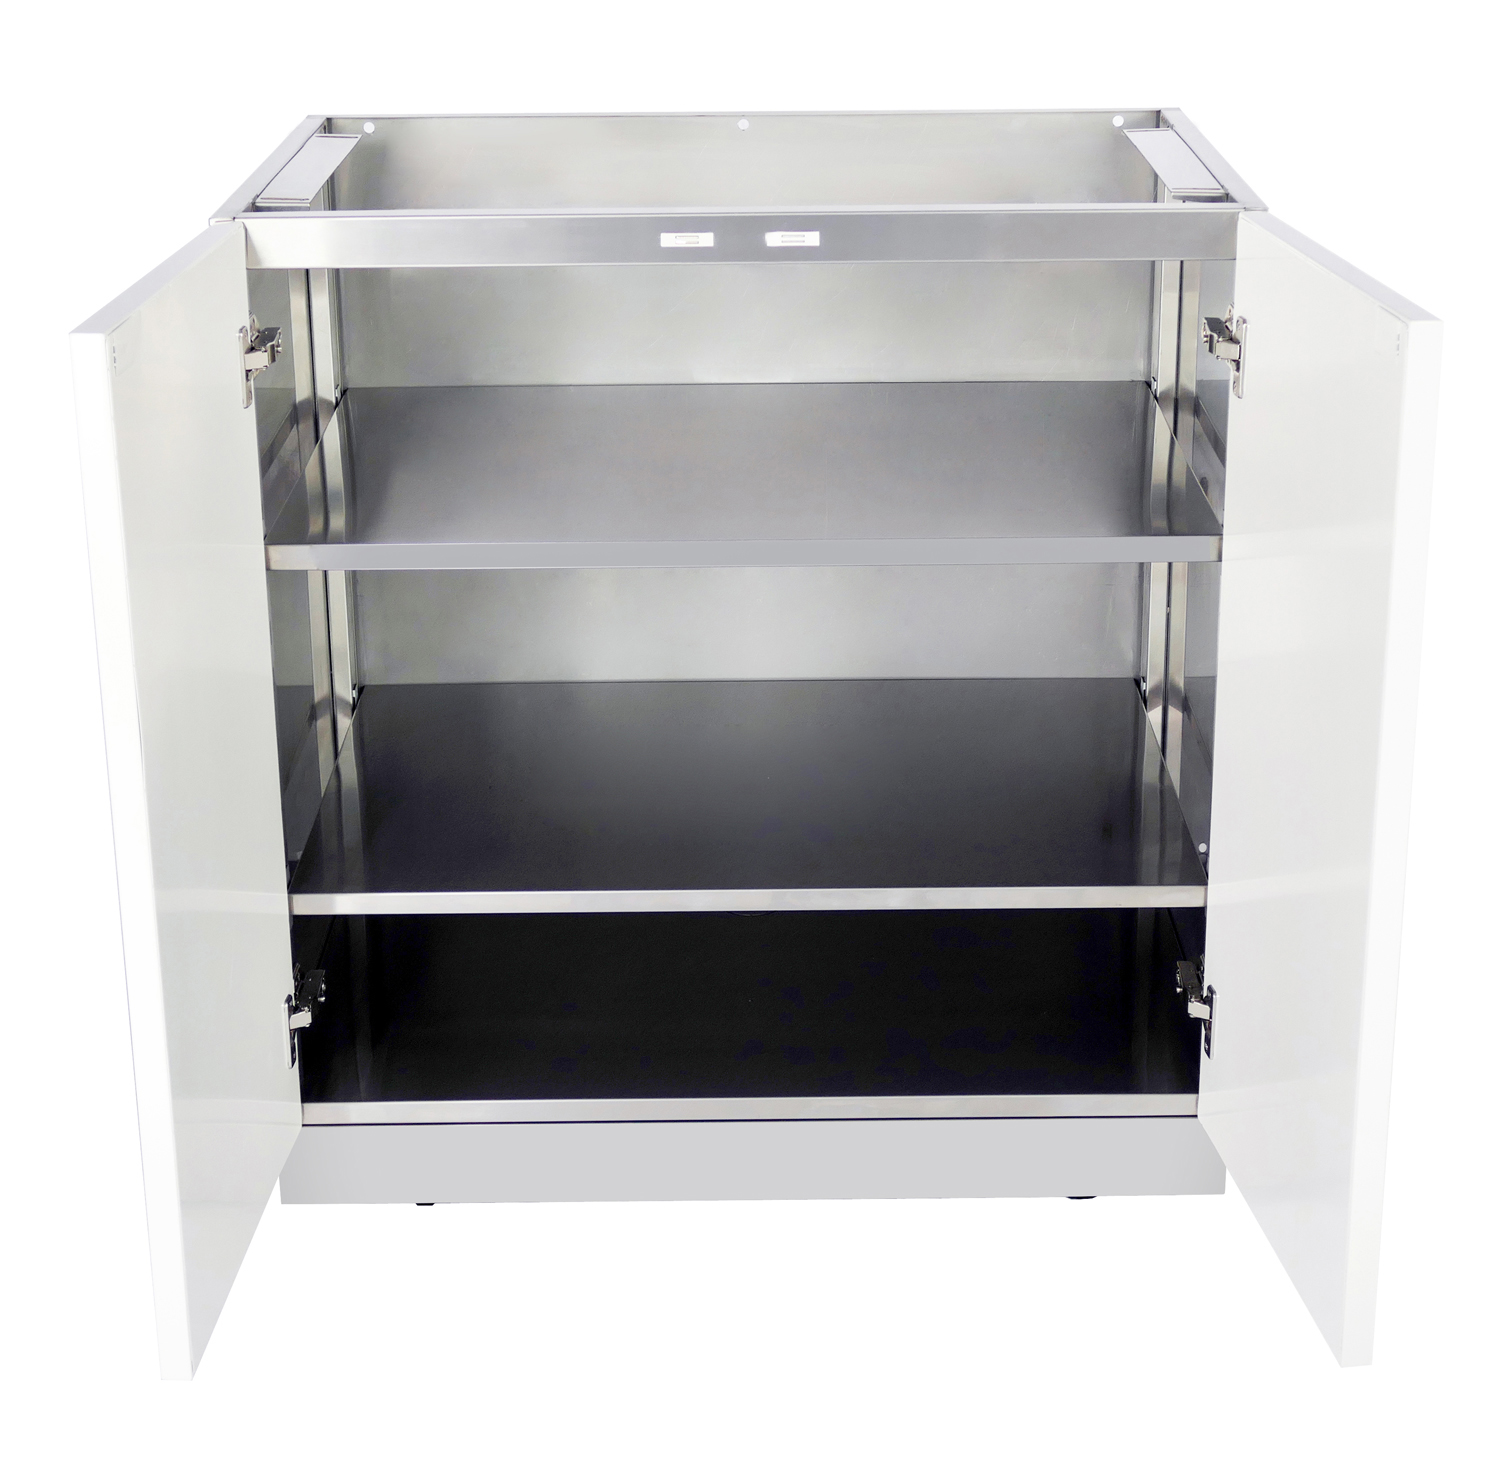 G40001 - Open outdoor kitchen cabinet 1500